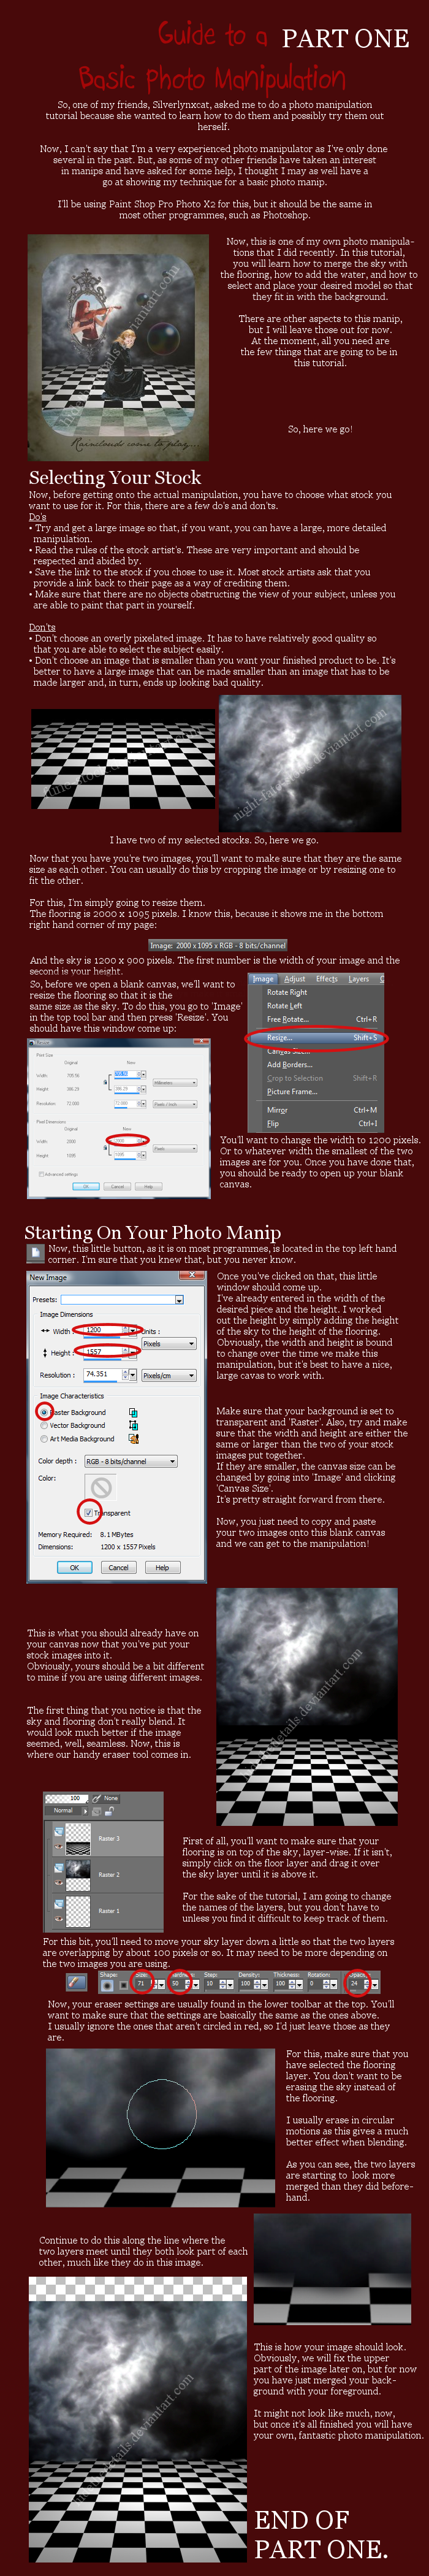 Basic Photo Manip Guide: Part1 by HideTheDetails